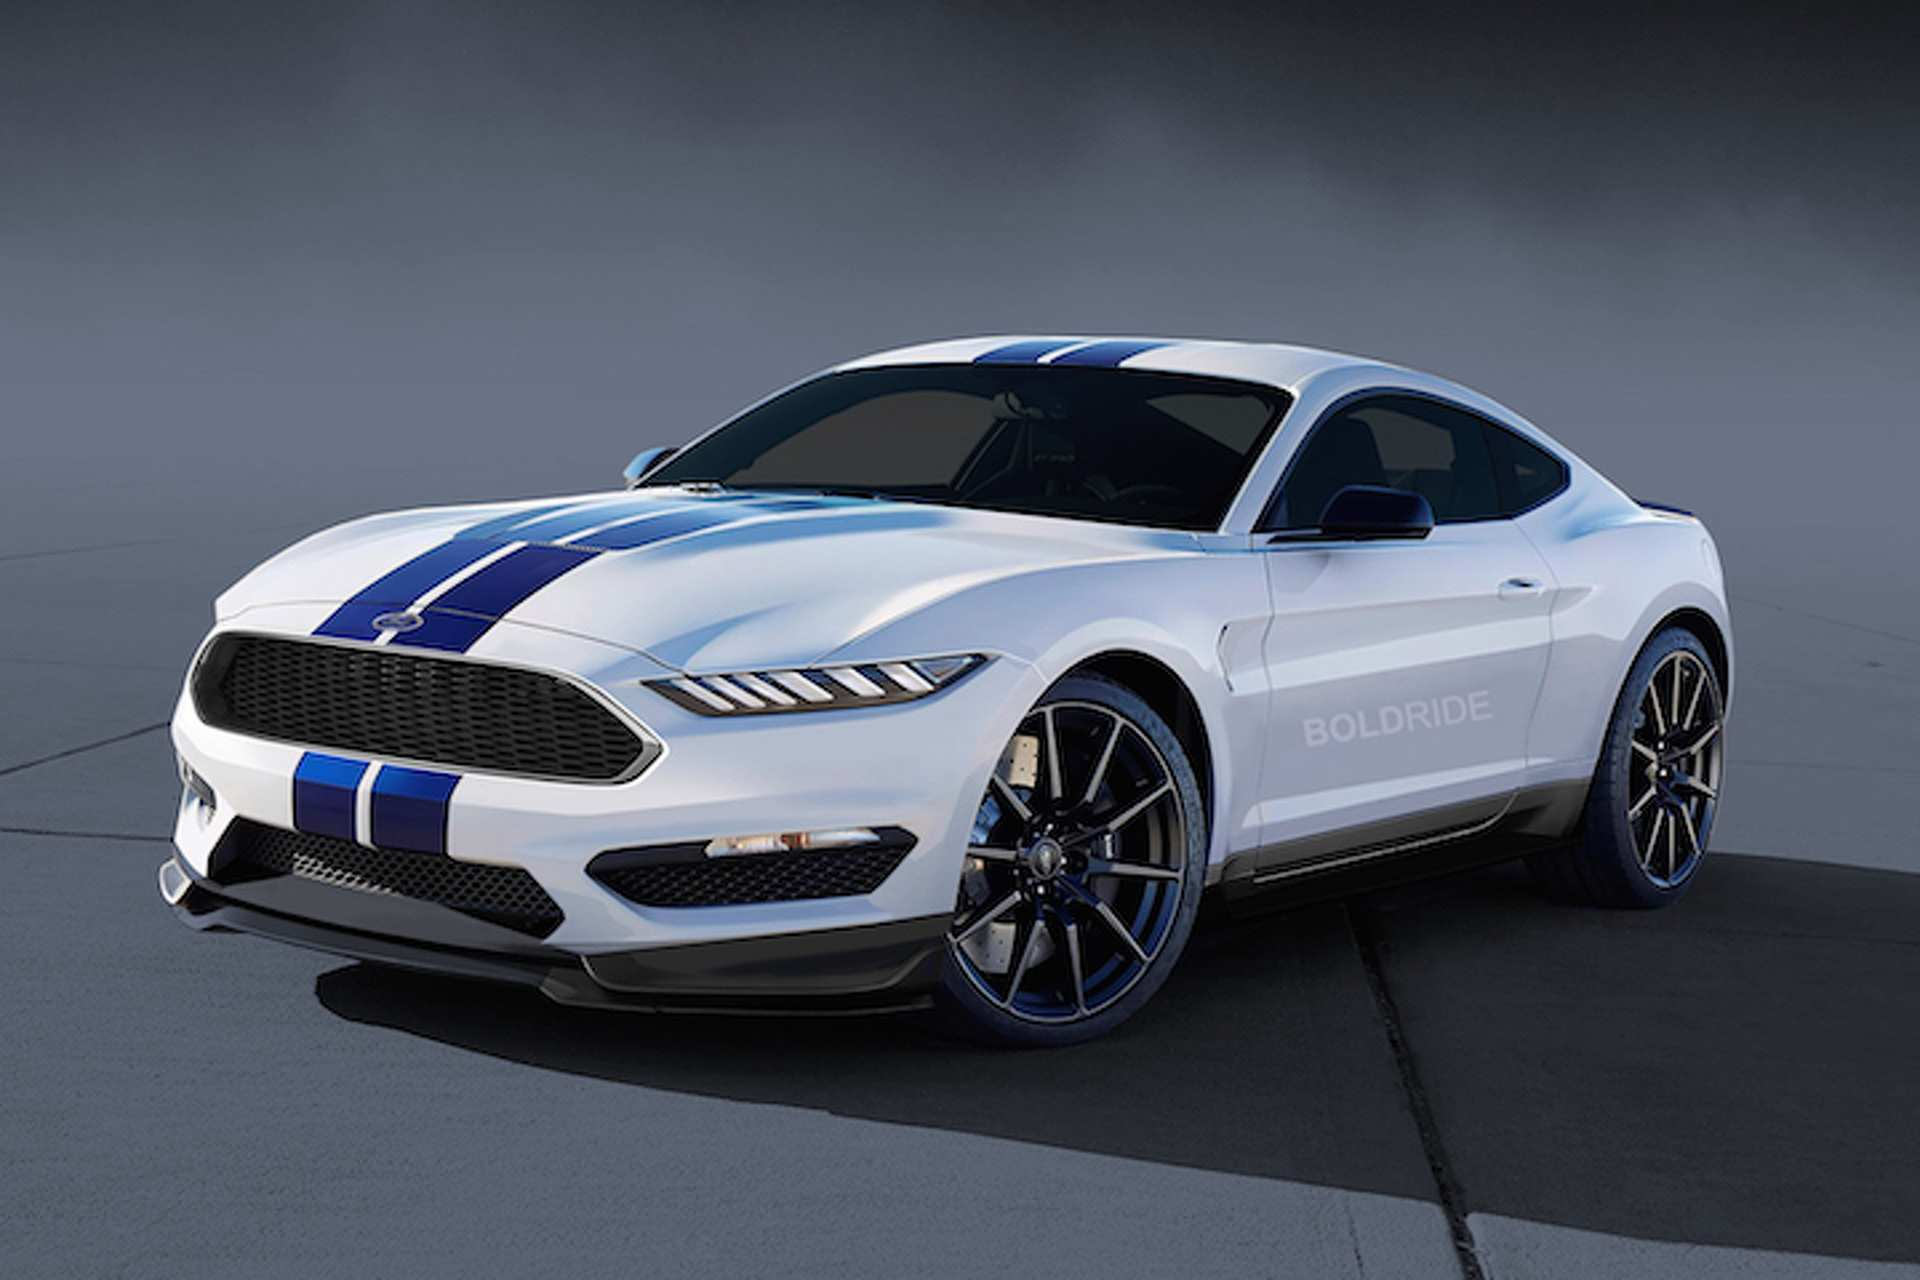 84 Best 2020 Ford Mustang Gt Images